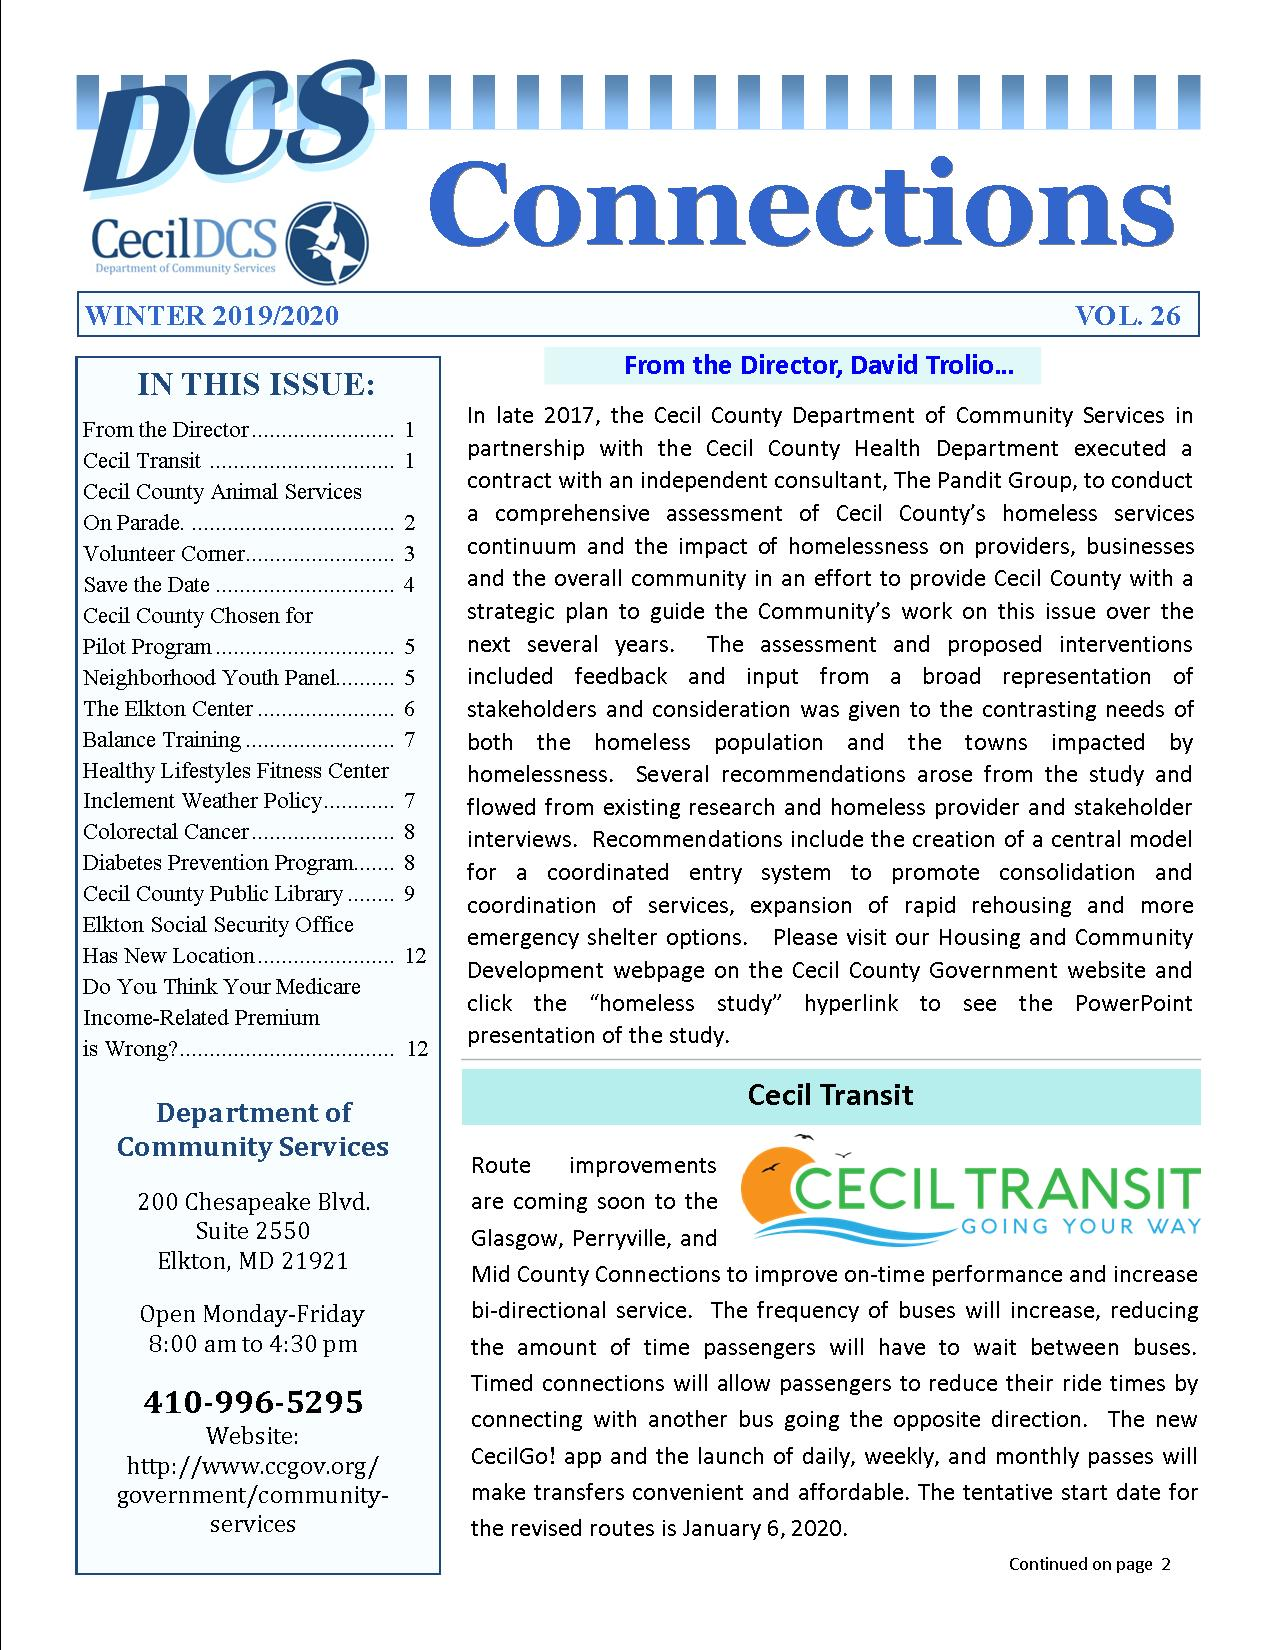 Connections Vol. 26